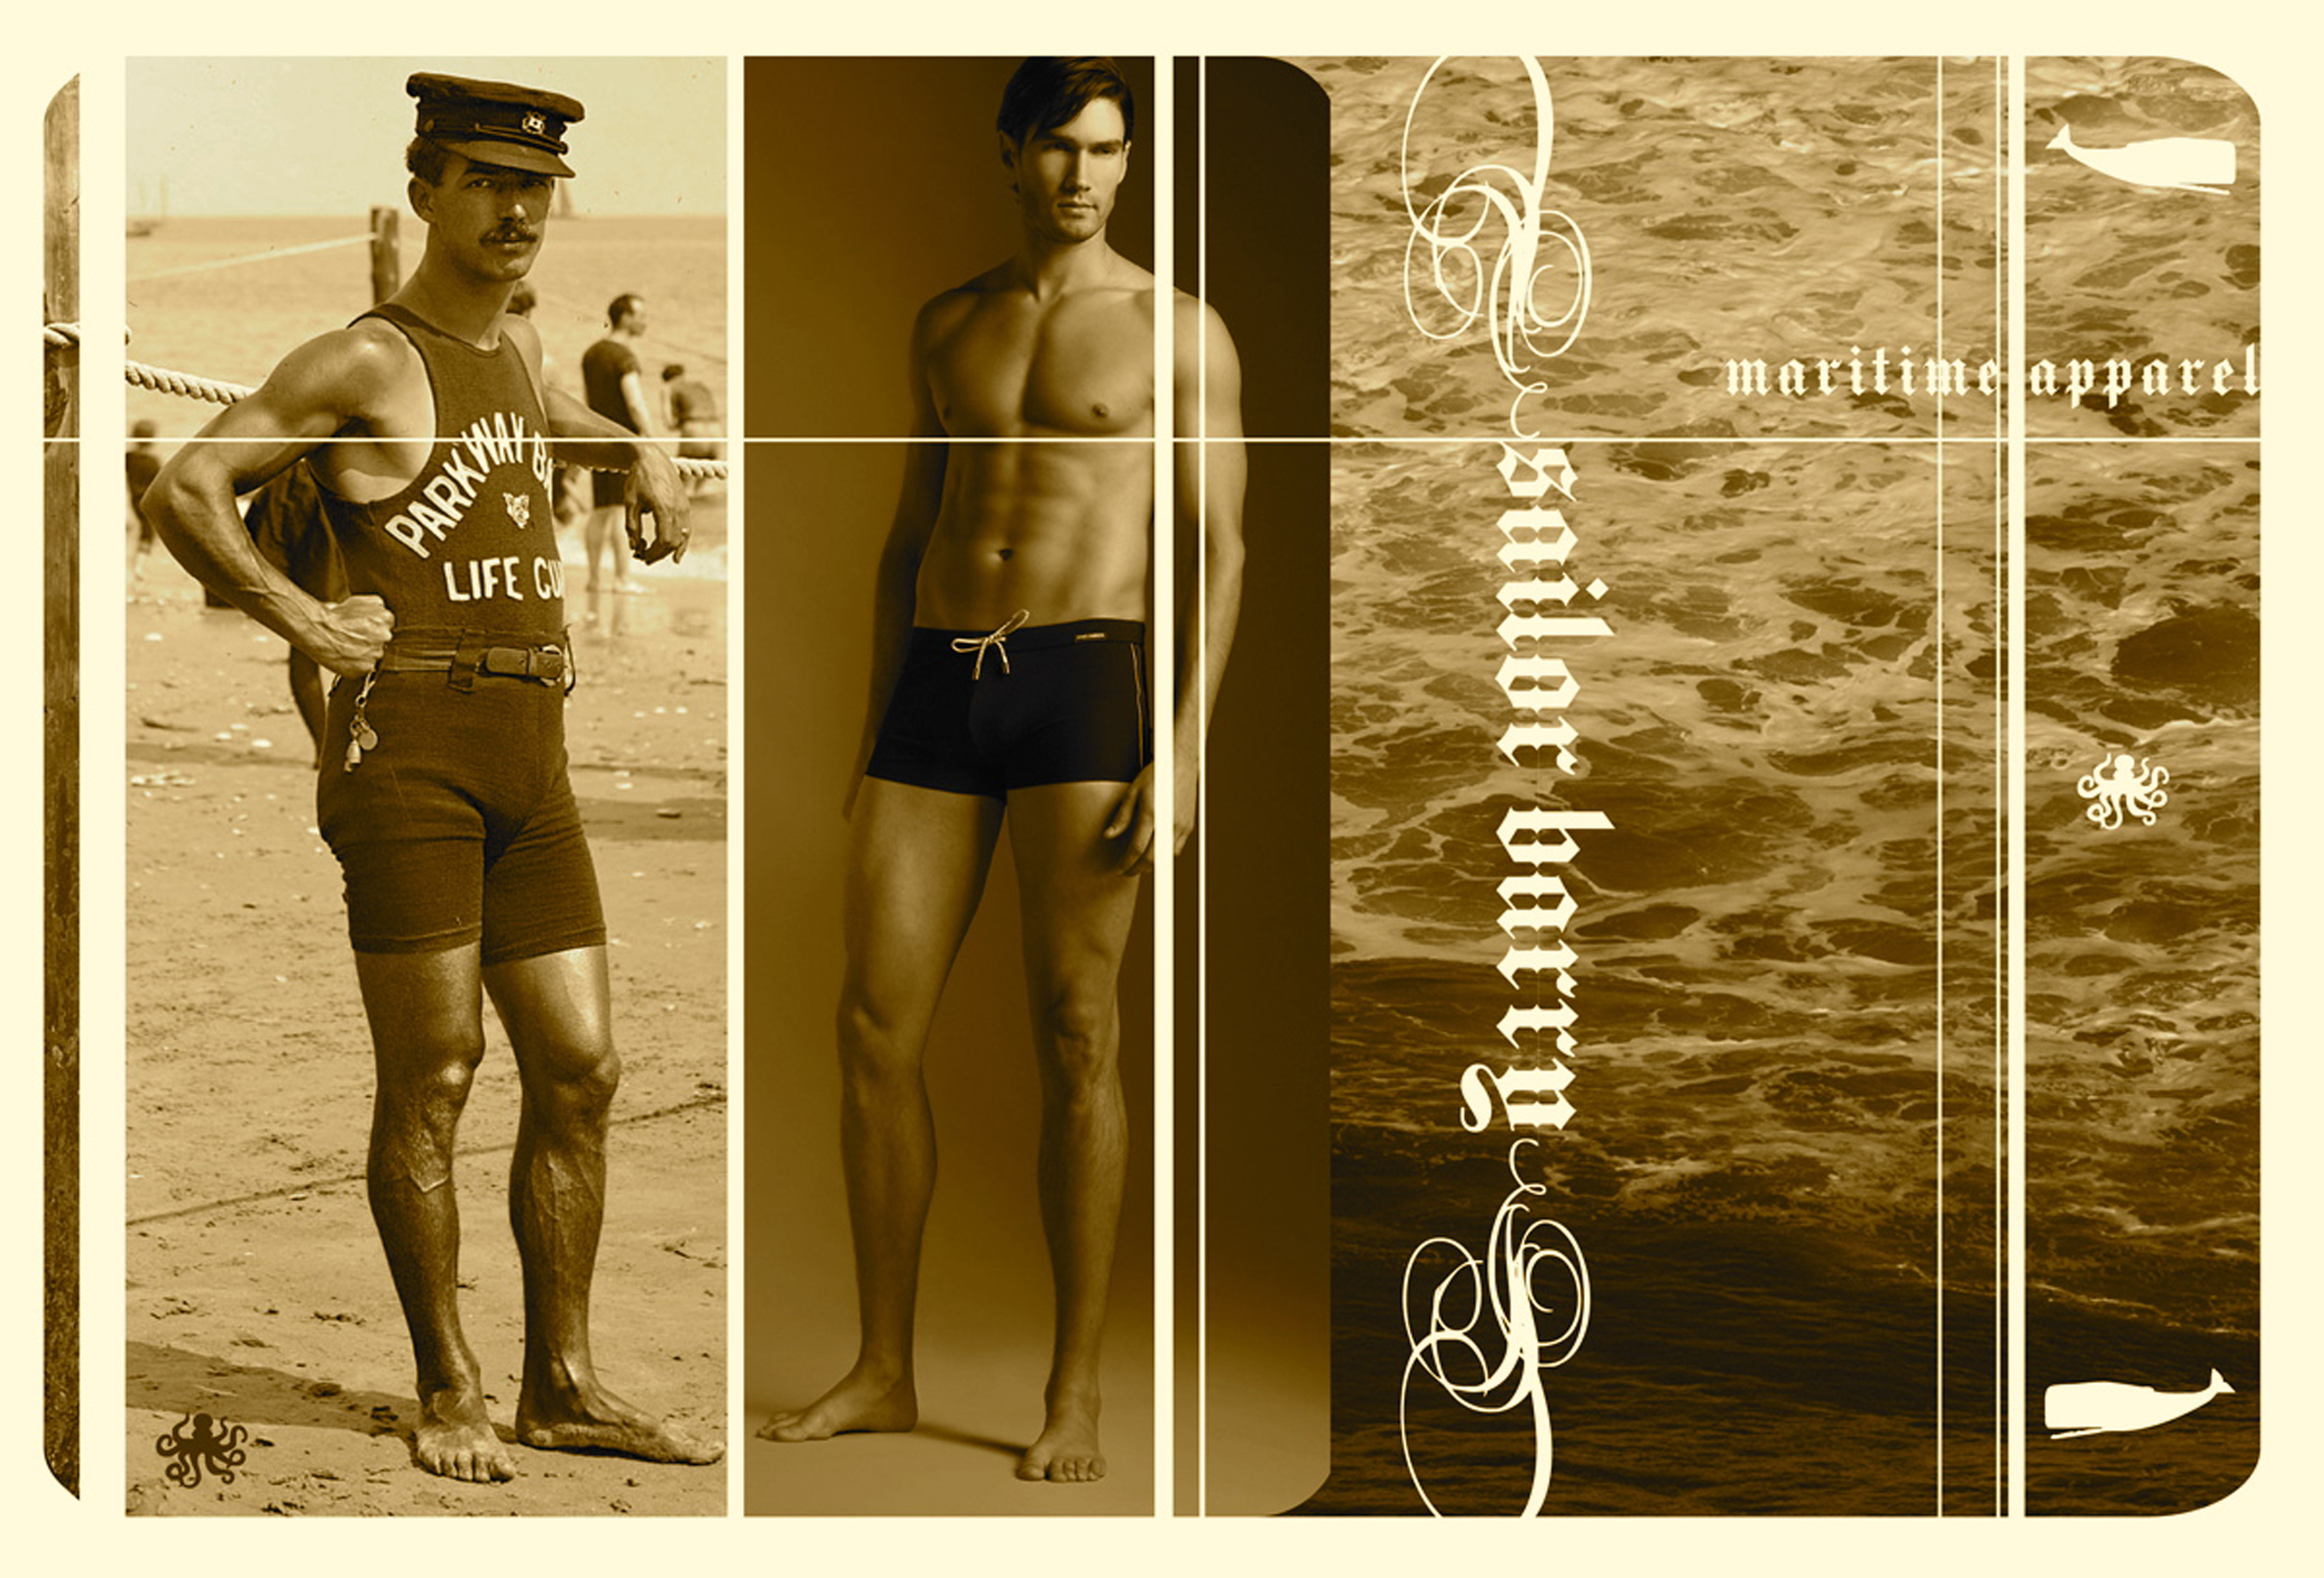 sailor barry clothing line